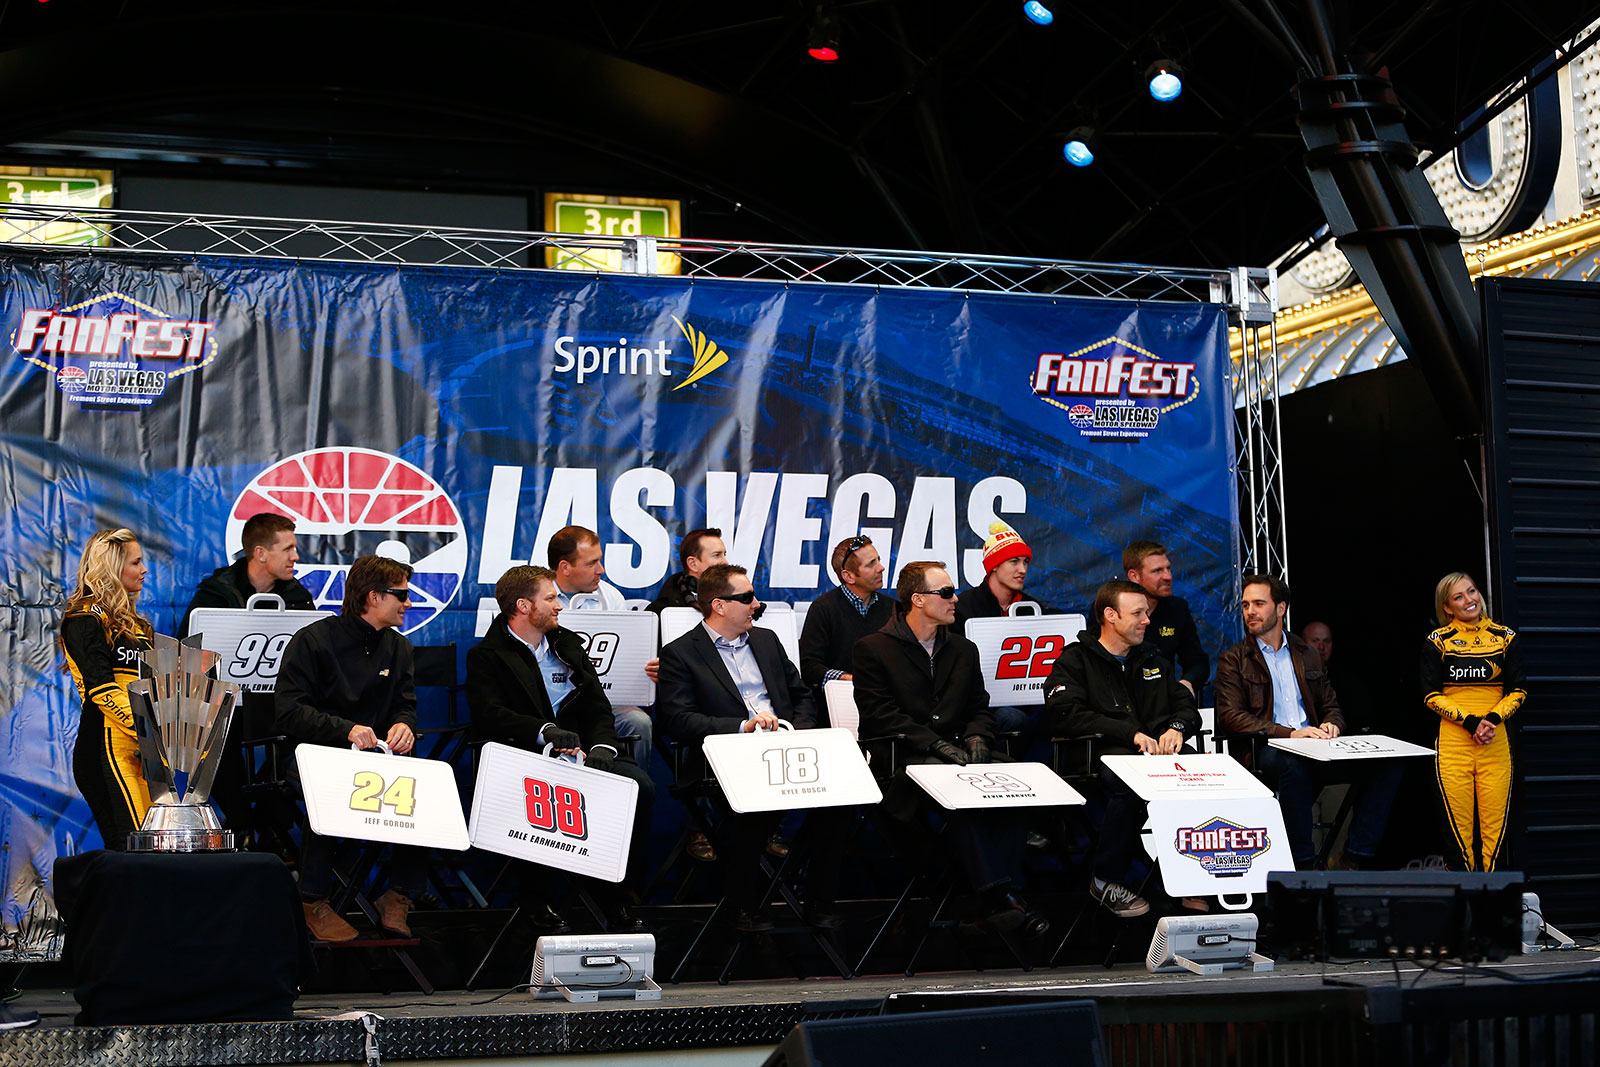 2013championsweek_fanfest-all-drivers